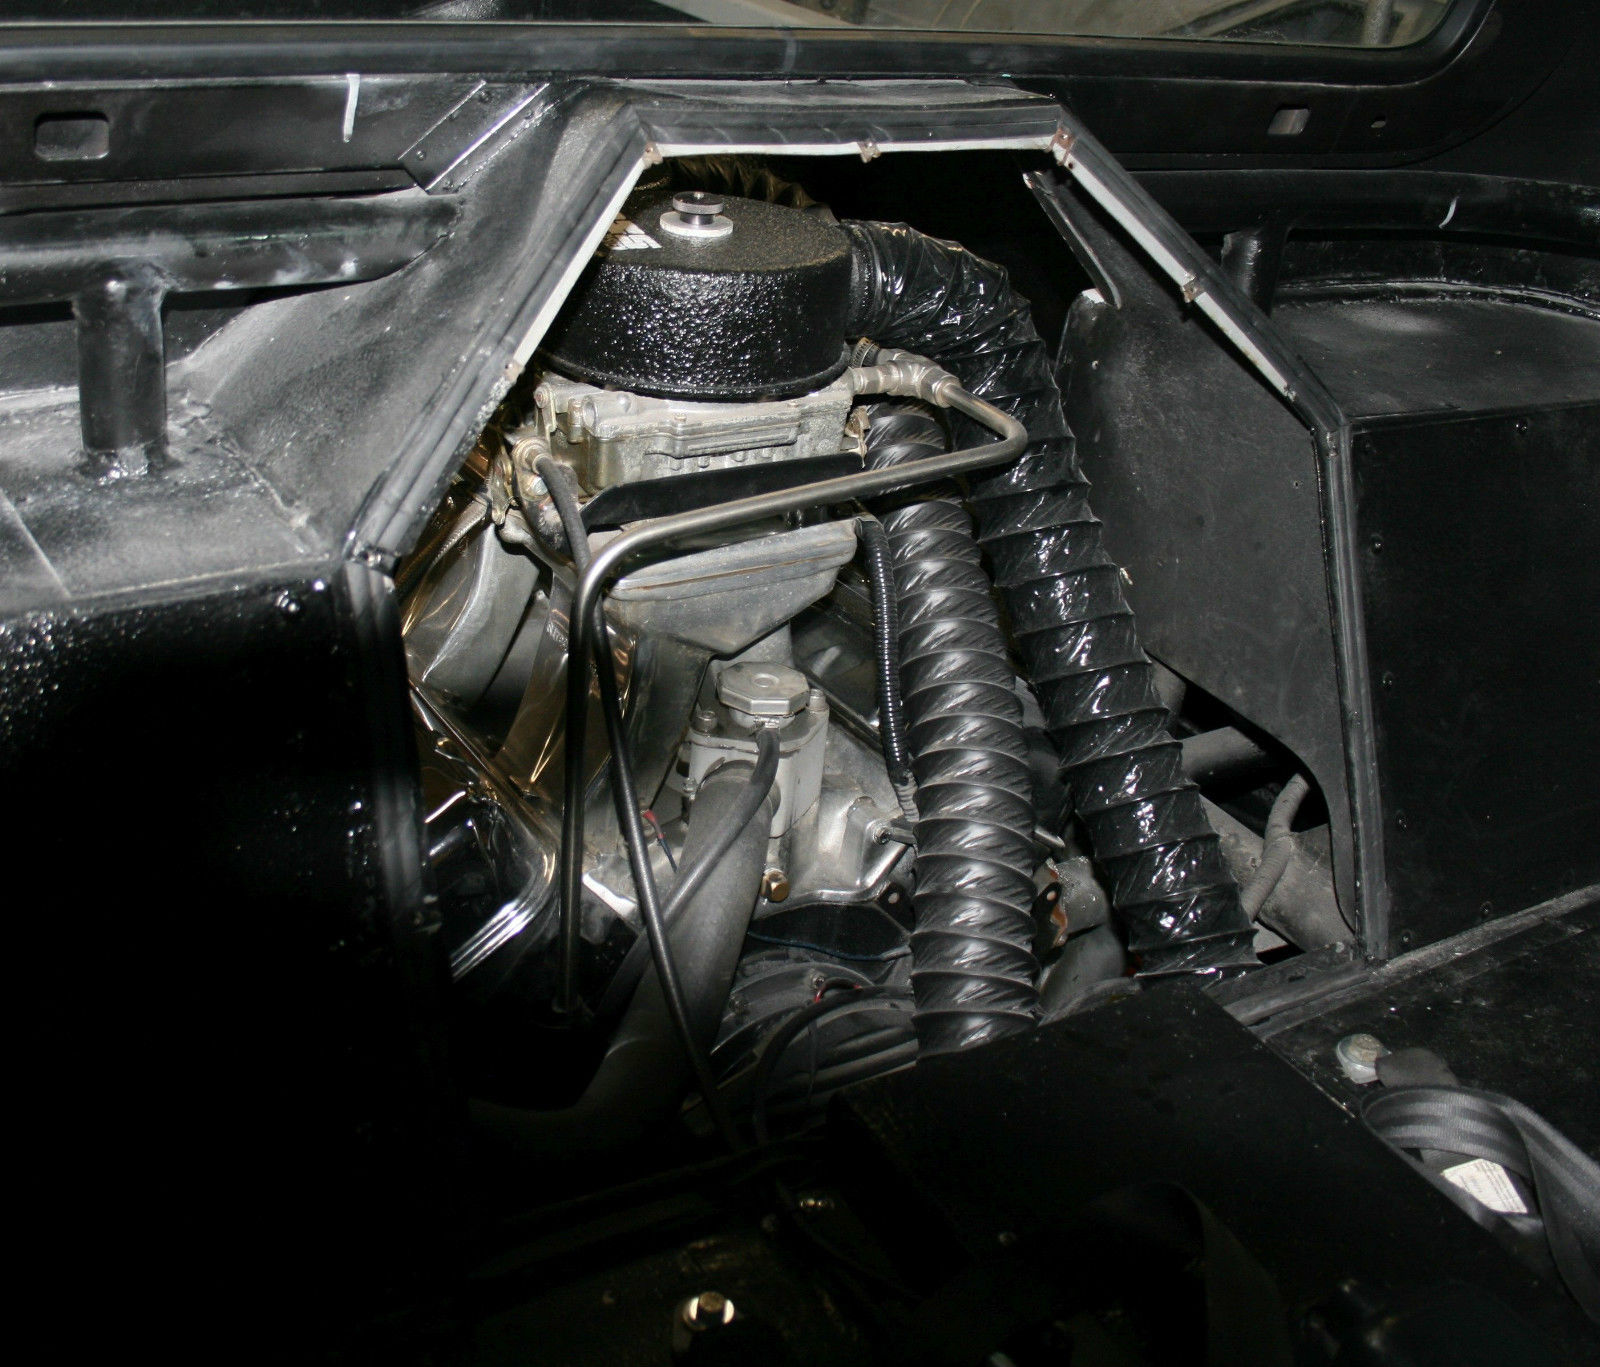 Pro Street Econoline With A Mid Engine Bbc V on Chevy Wiring Harness For In The Bed